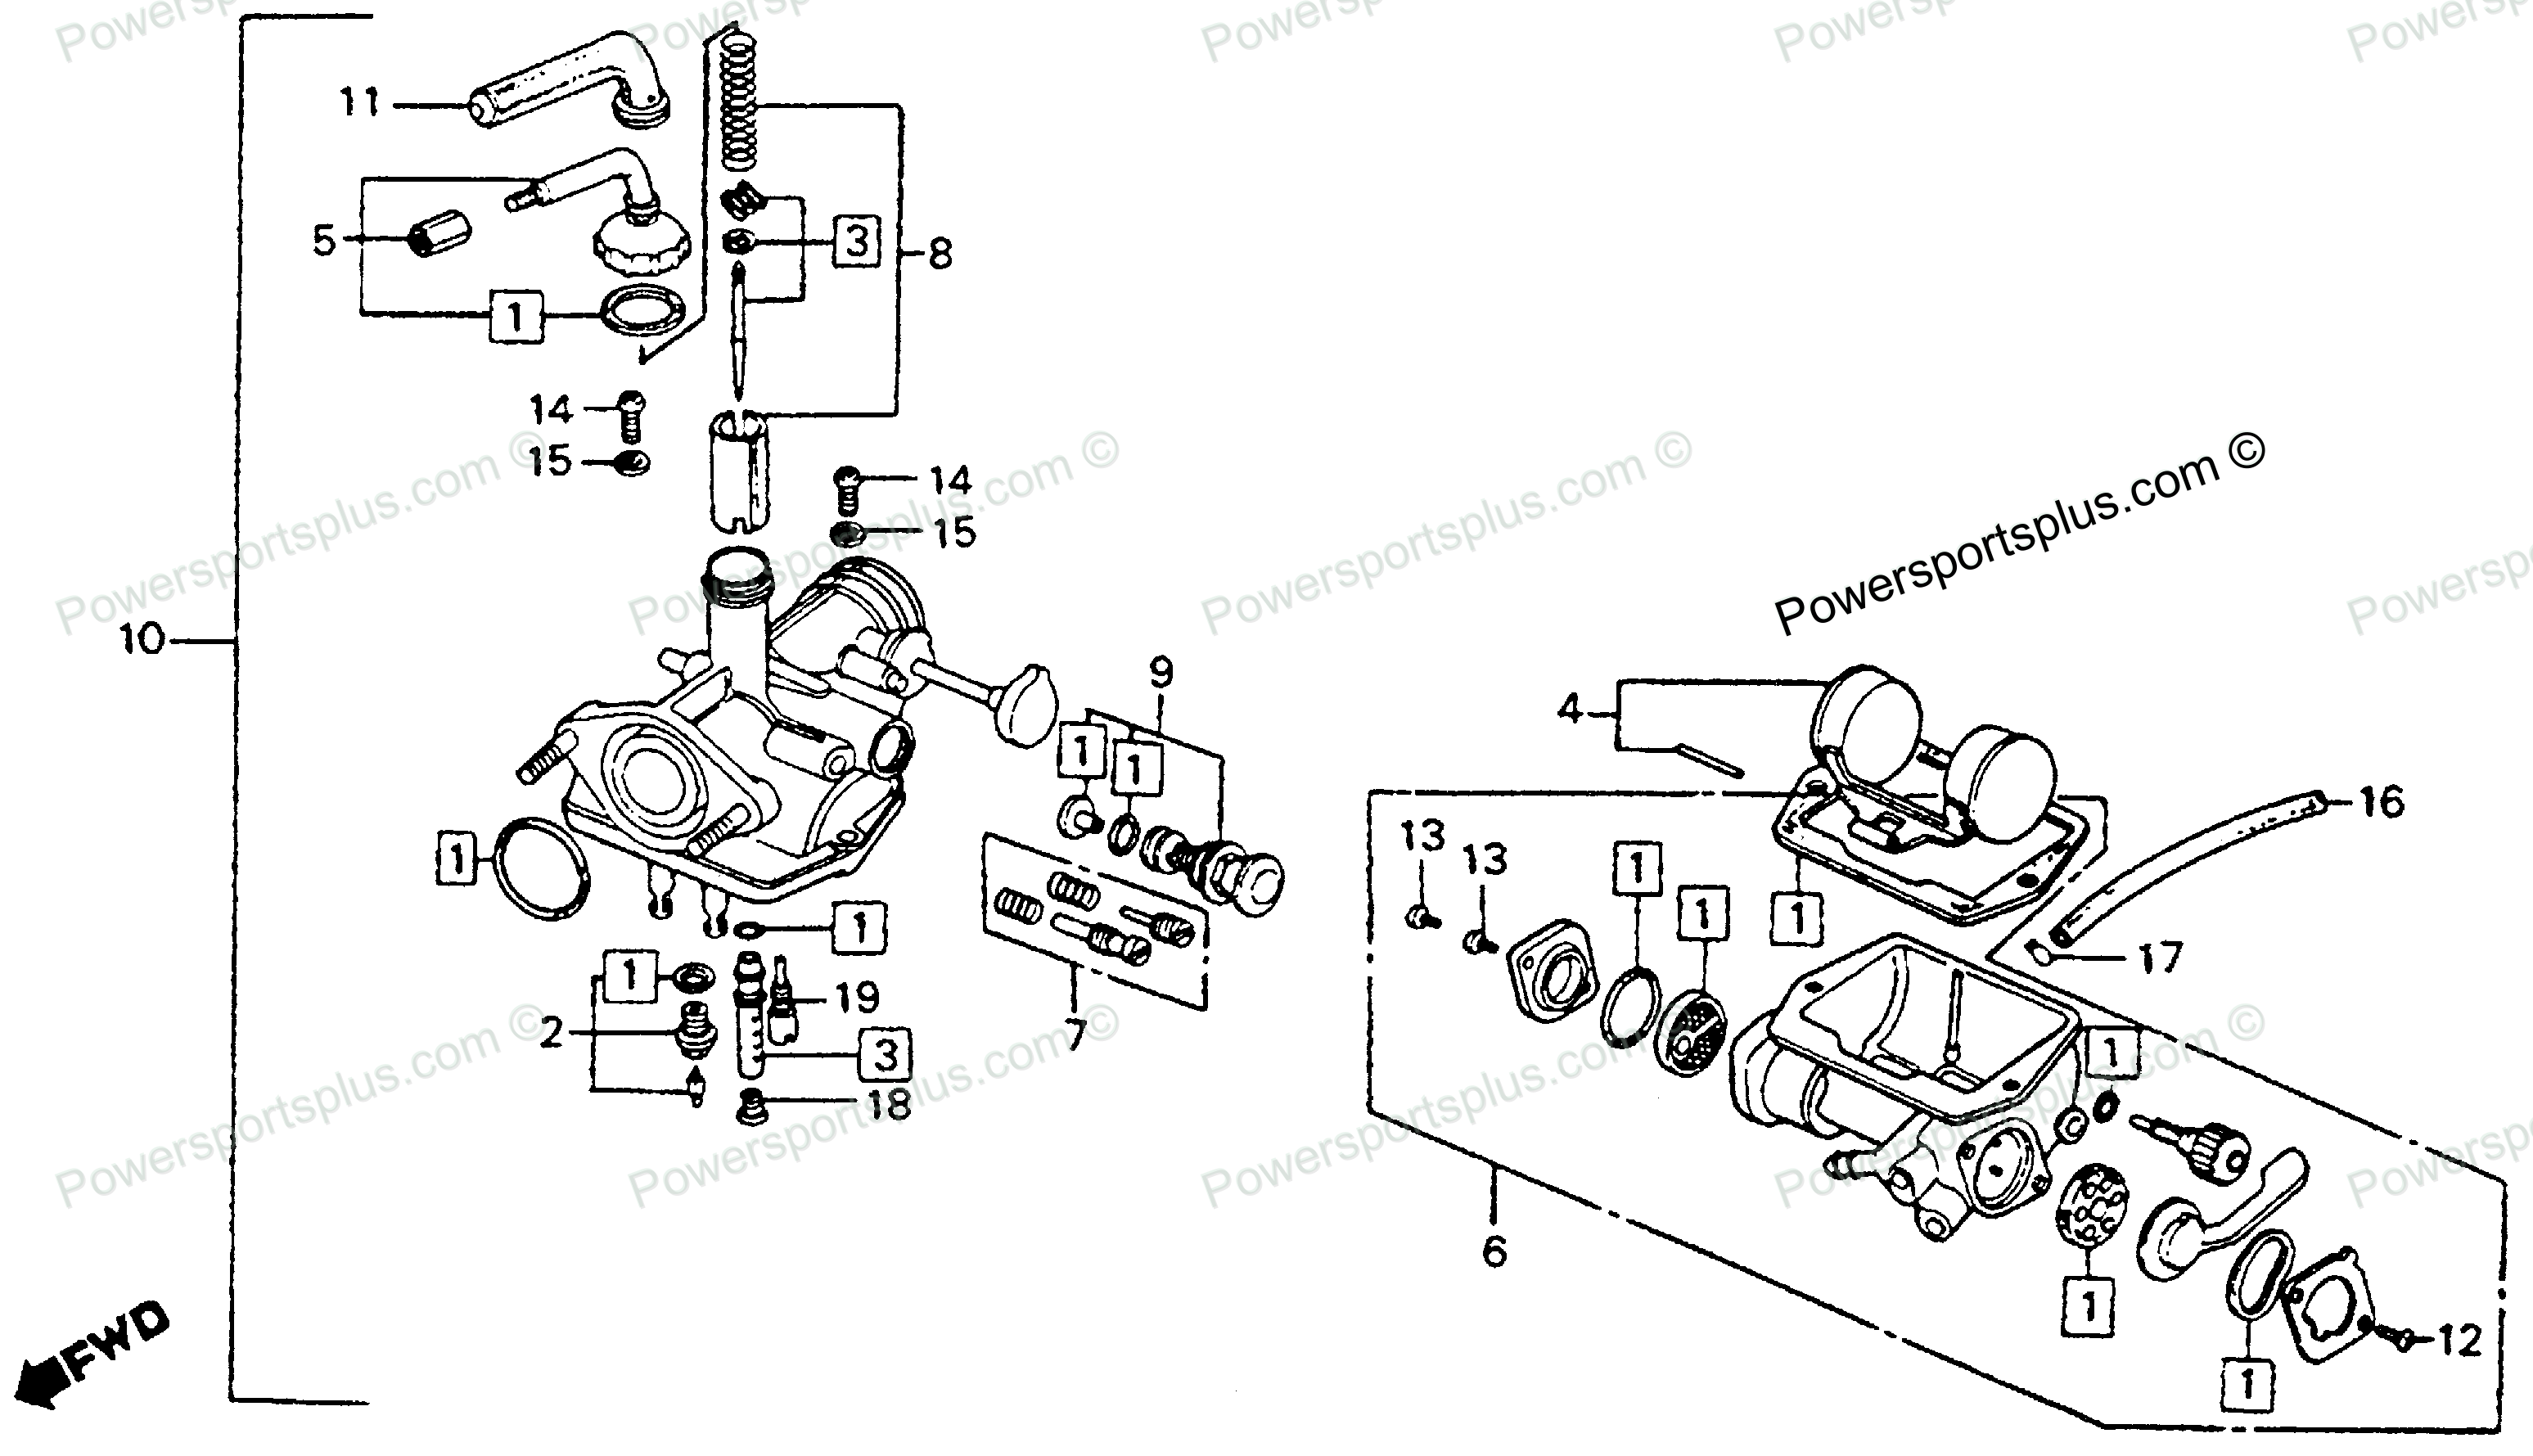 [NRIO_4796]   1965 Honda S90 Wiring Diagram - Jaguar Xf Engine Diagram for Wiring Diagram  Schematics | Honda Cb160 Wiring Diagram |  | Wiring Diagram Schematics